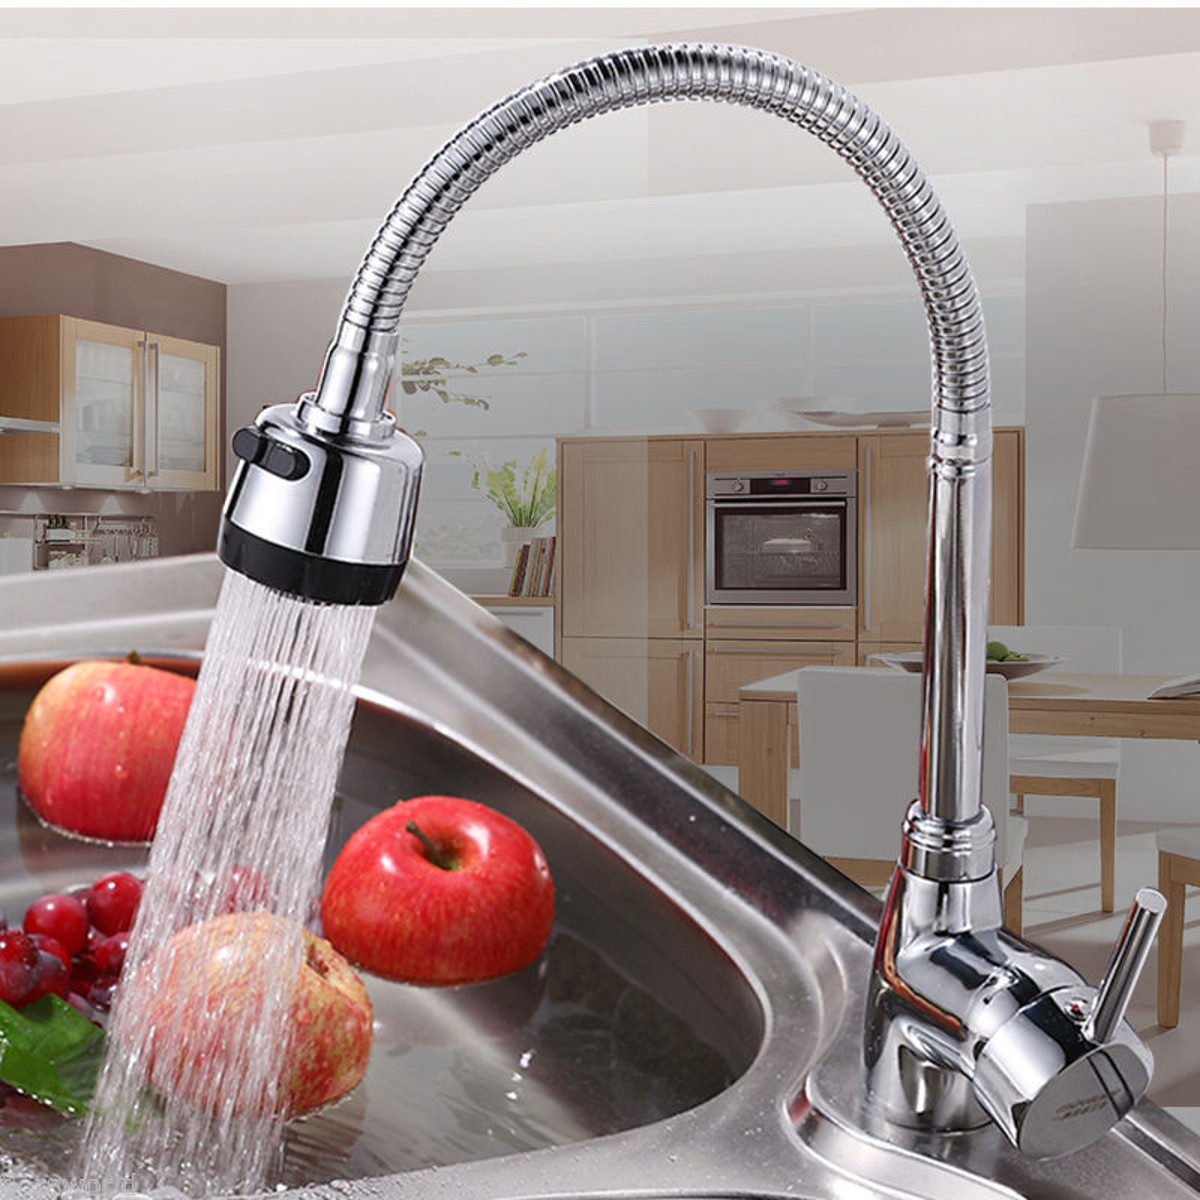 Kitchen Bathroom Spout Faucet 360 Rotate Pull out Sprayer Hot Cold Water Mixer Tap